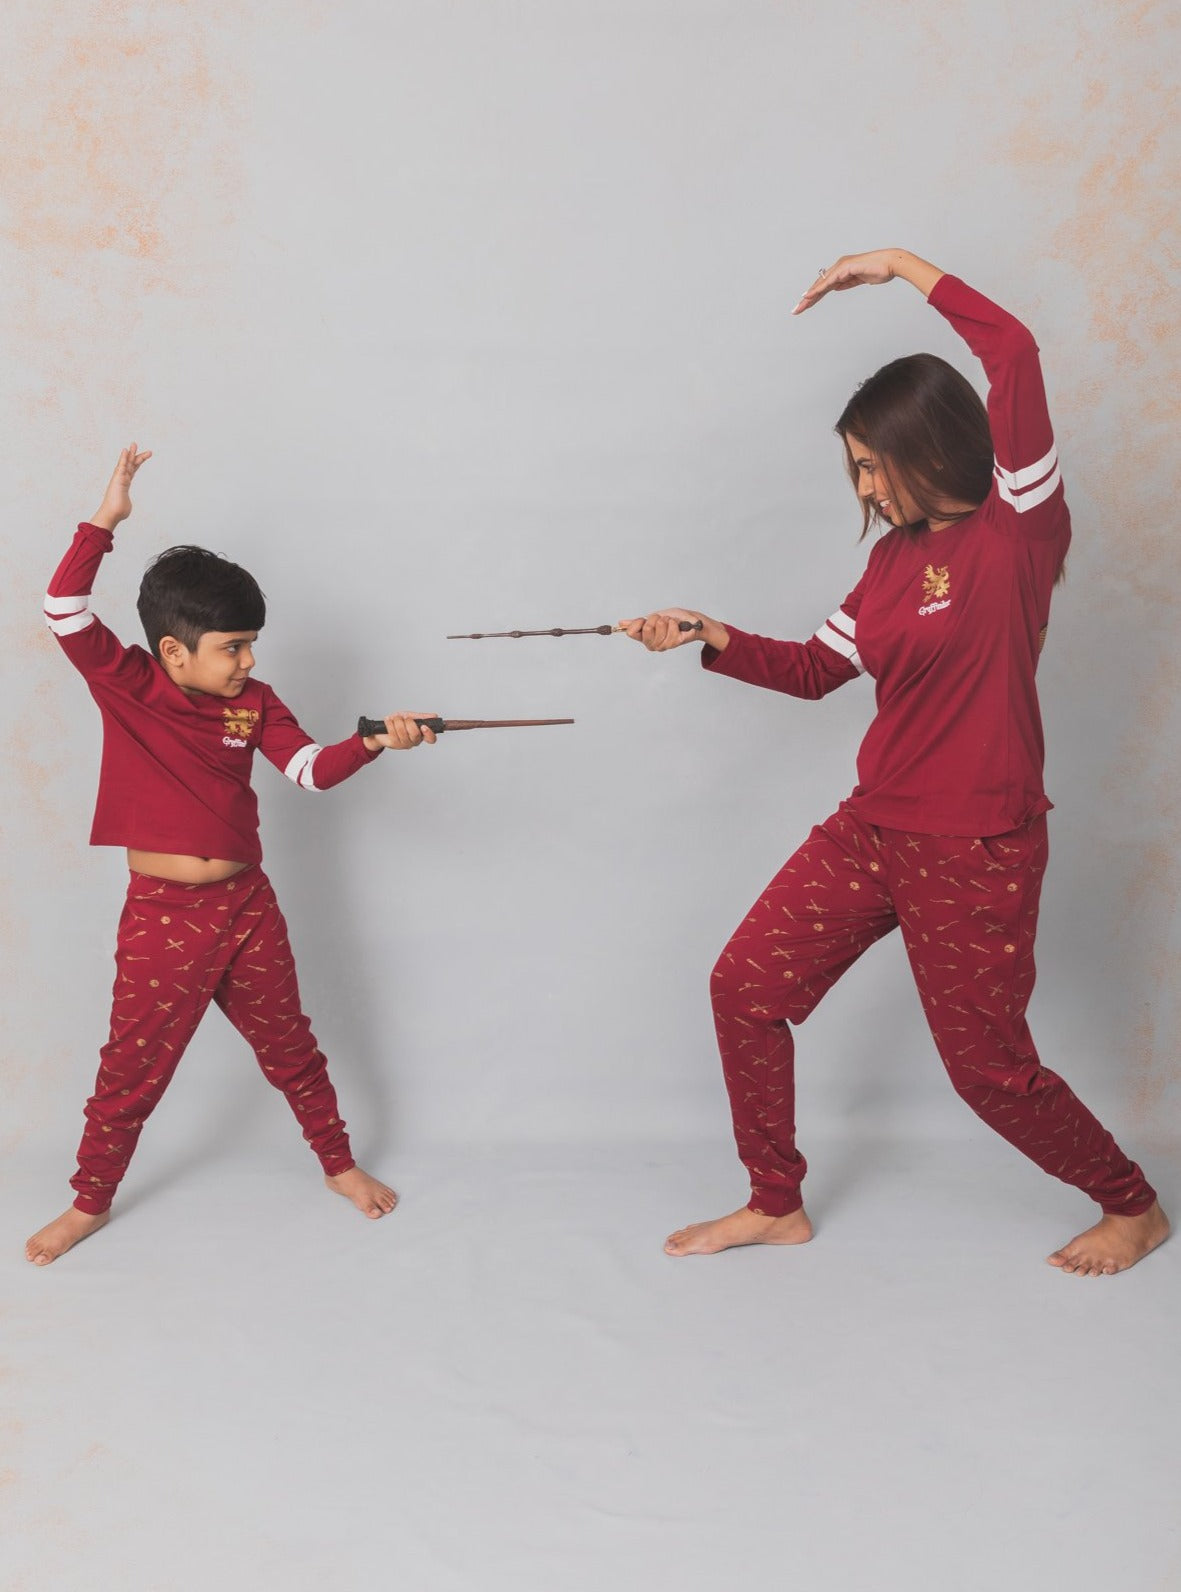 harry potter quidditch nap chief mom daughter twinning son 100% organic cotton cozy pajama set